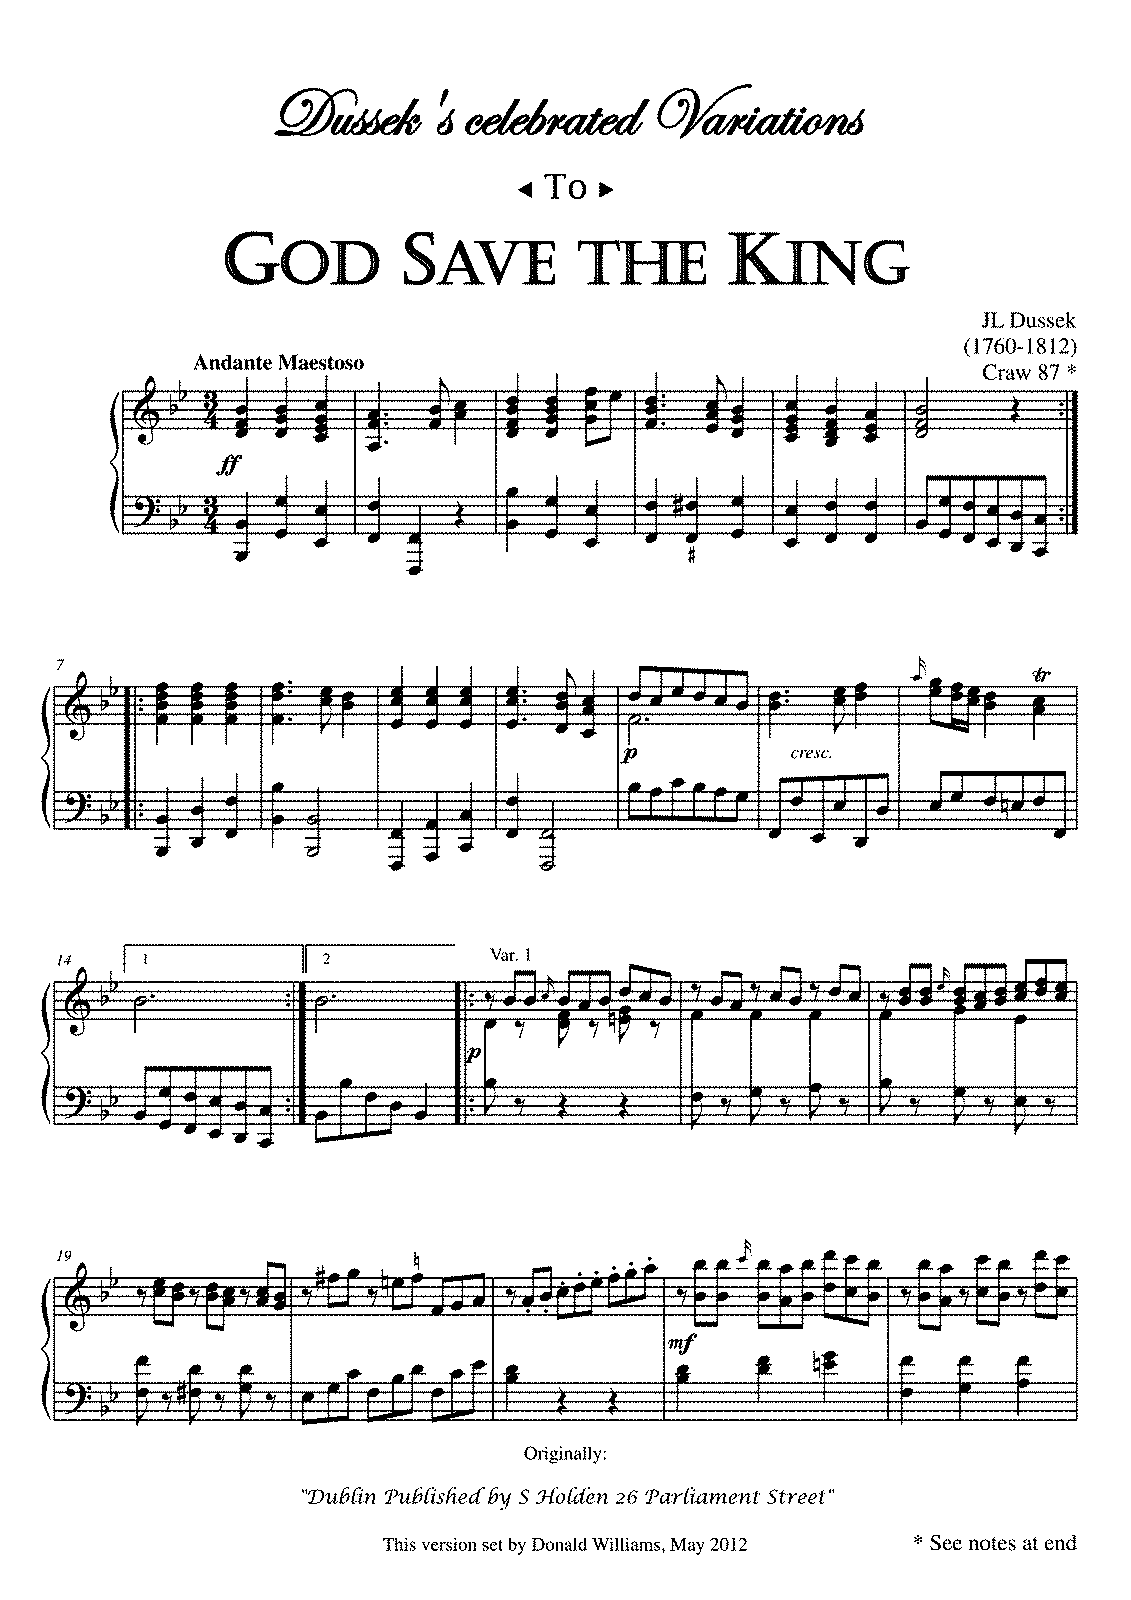 PMLP24274-Dussek JL-Variations to God Save the King.pdf